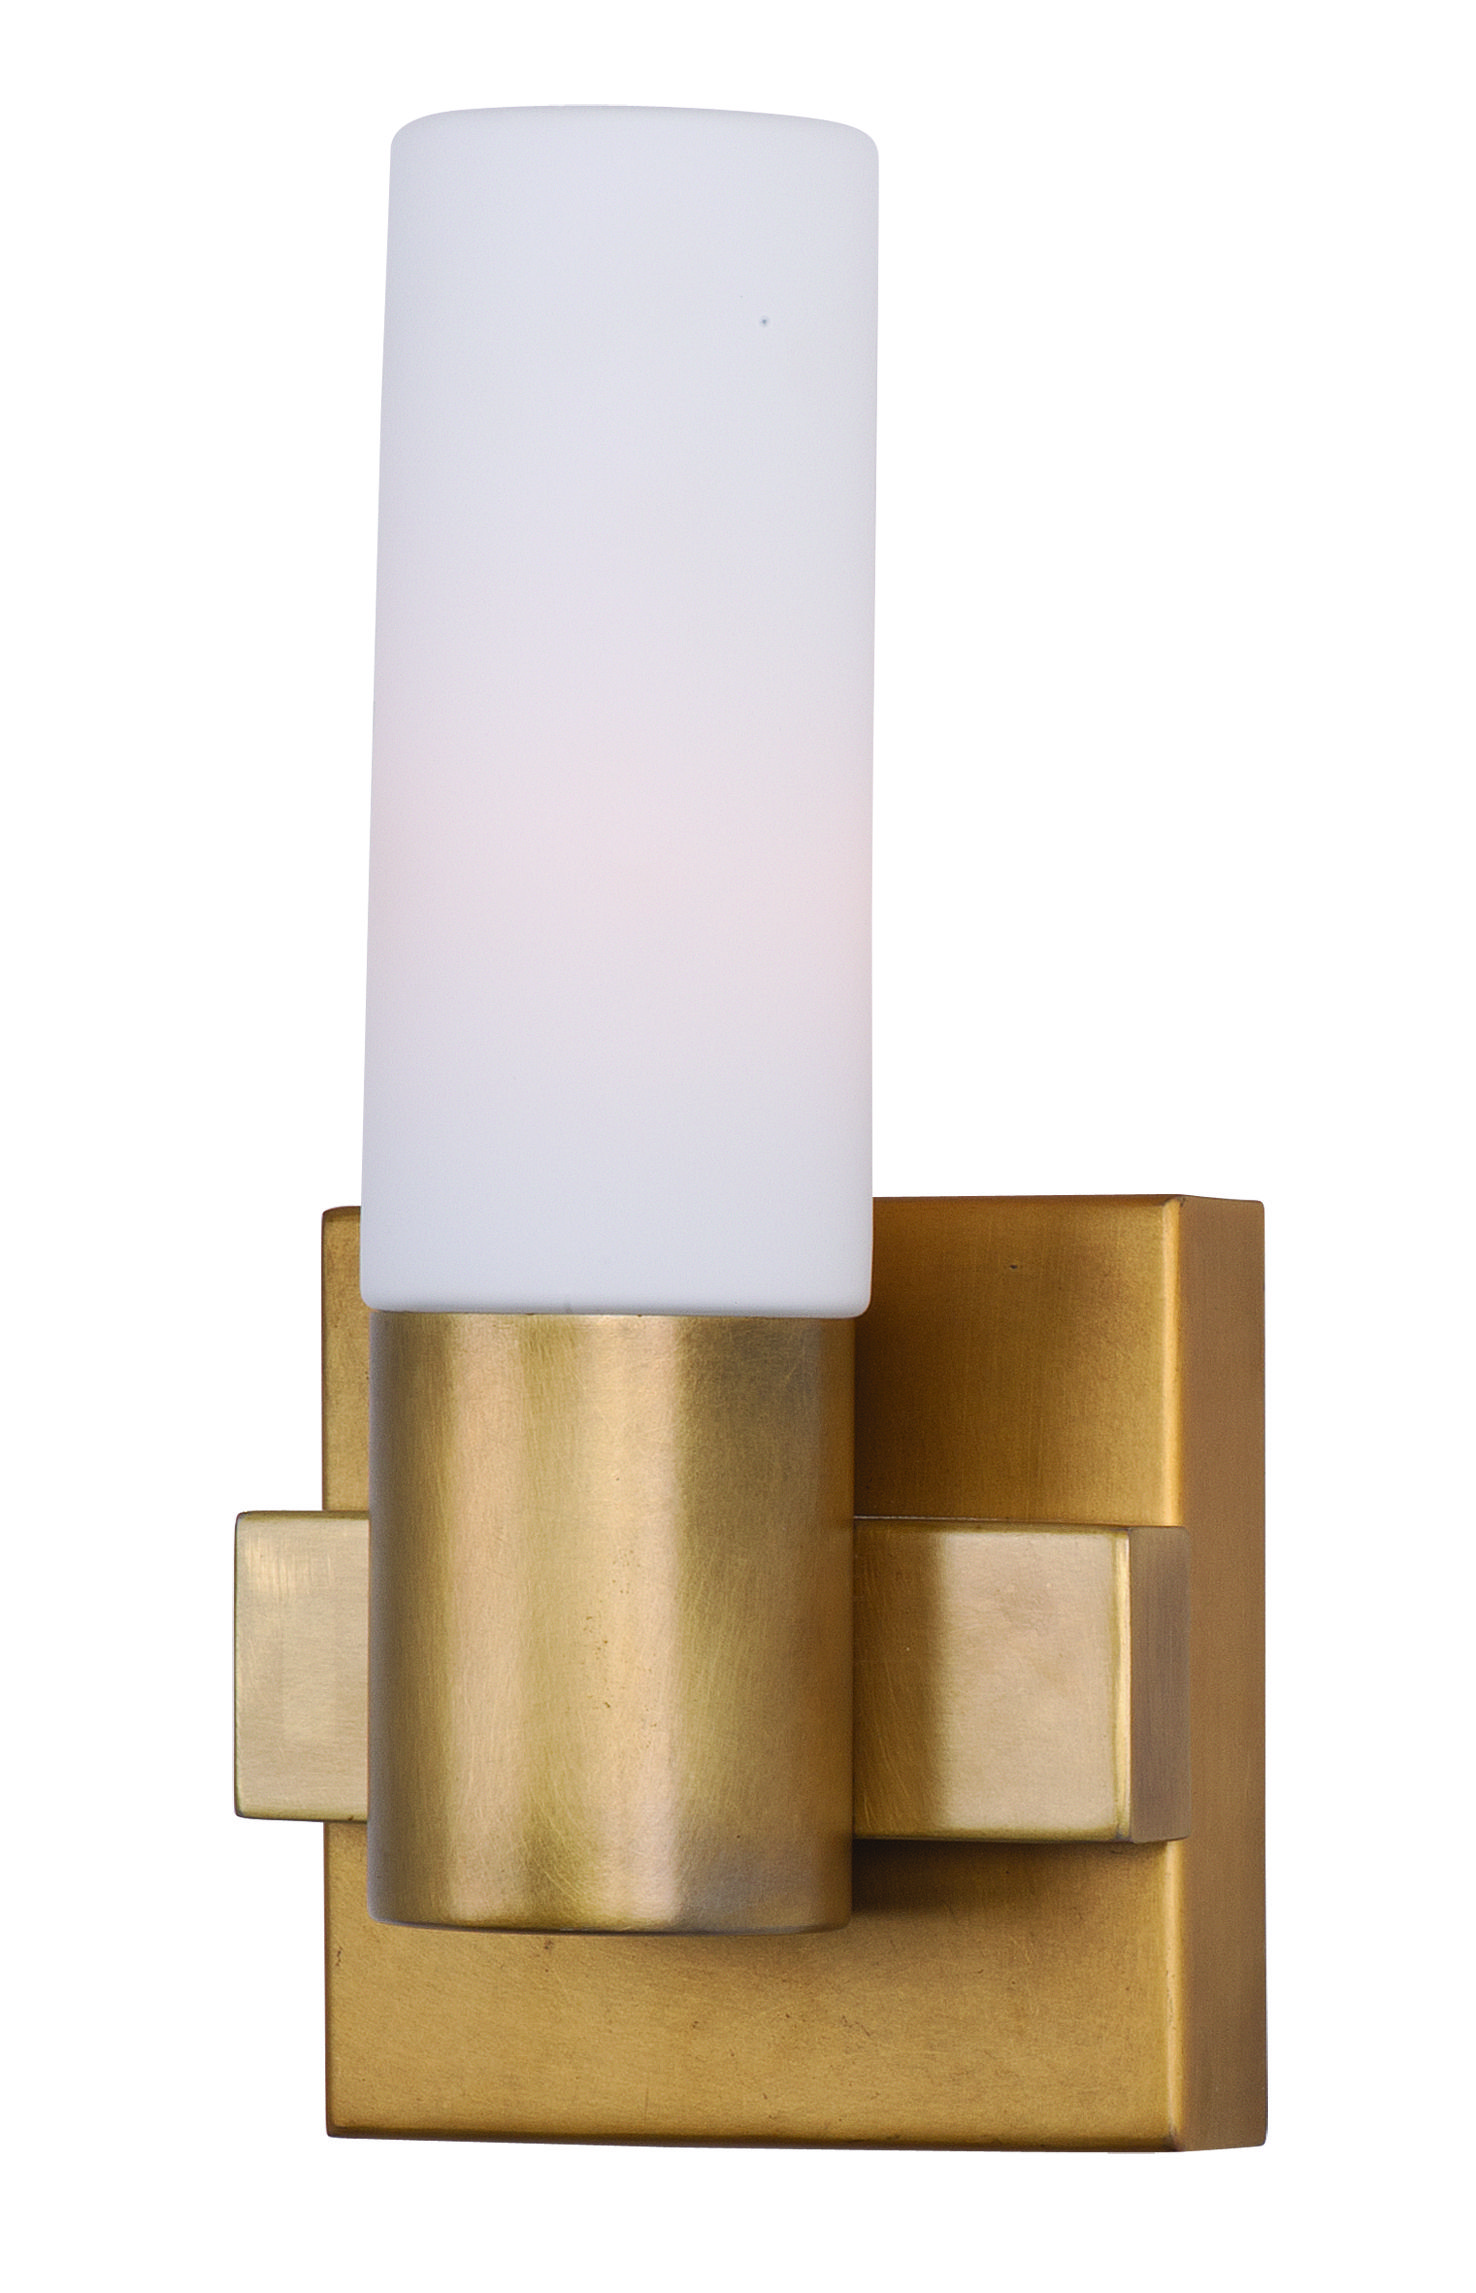 Photo of Maxim Lighting 22411SWNAB Contessa wall lamp made of brass from natural age